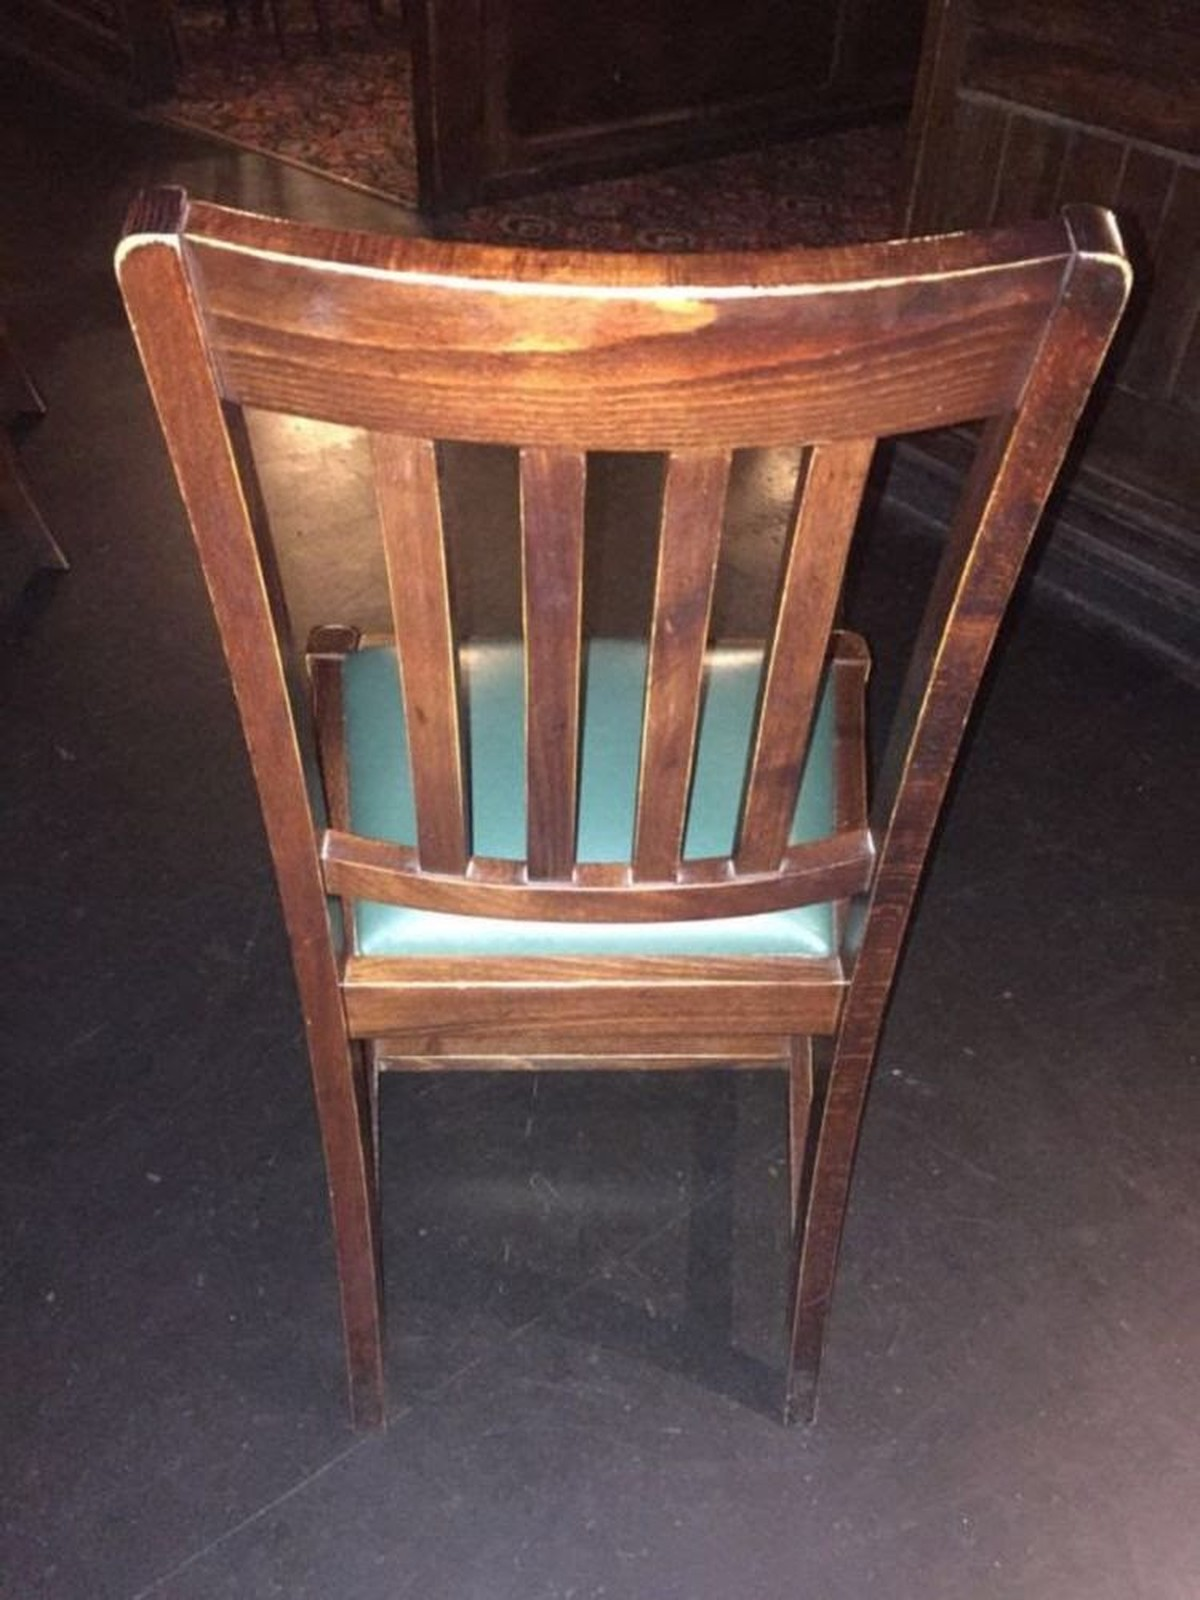 Secondhand Chairs And Tables Pub And Bar Furniture Pub